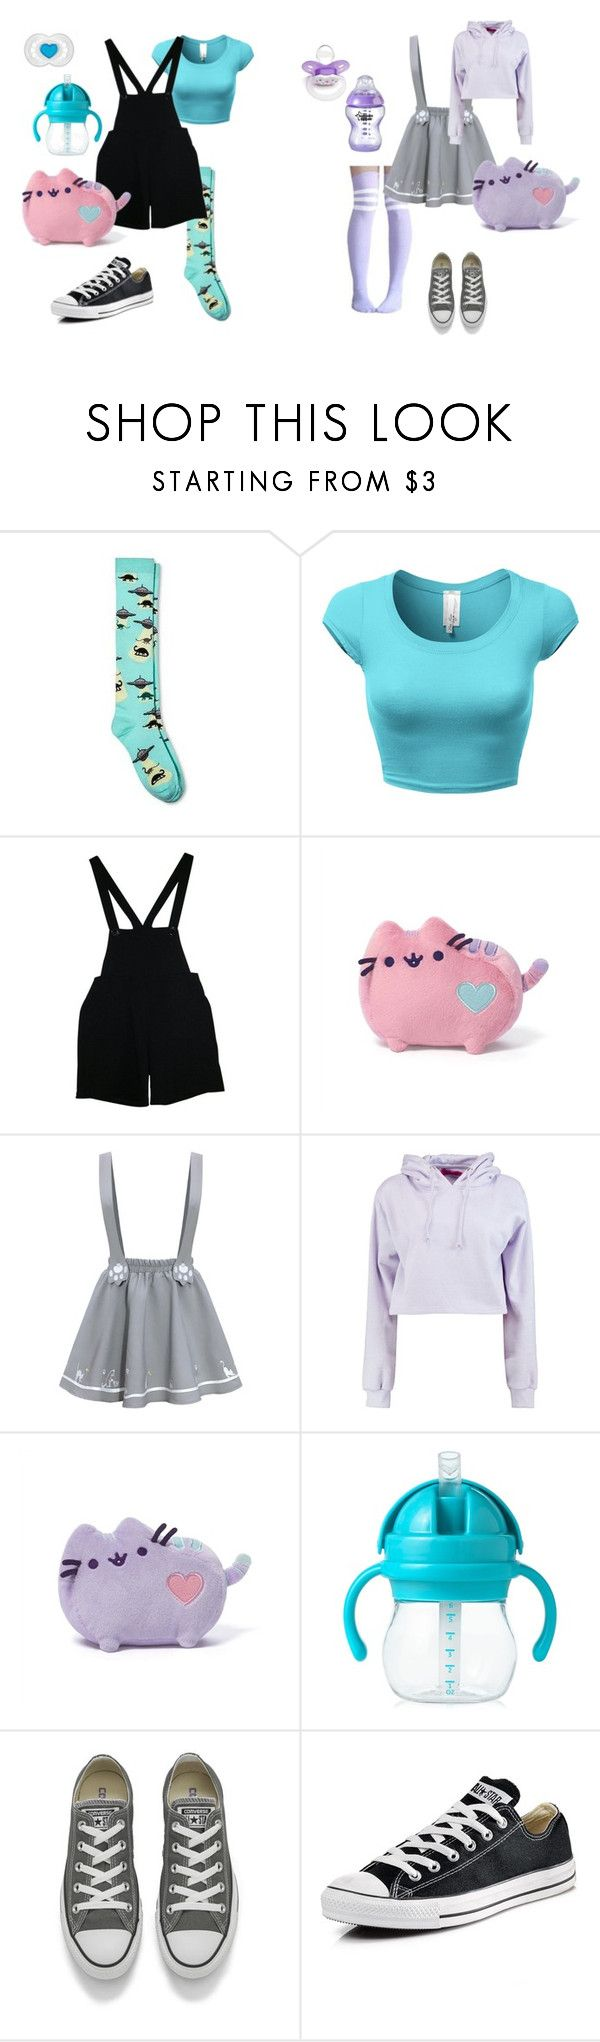 """#43{DDLG - Little(s)}"" by ofowlandwolf1617 ❤ liked on Polyvore featuring Xhilaration, American Apparel, Boohoo, OXO, Converse, little, littlegirl, daddy, ddlg and babysitter"